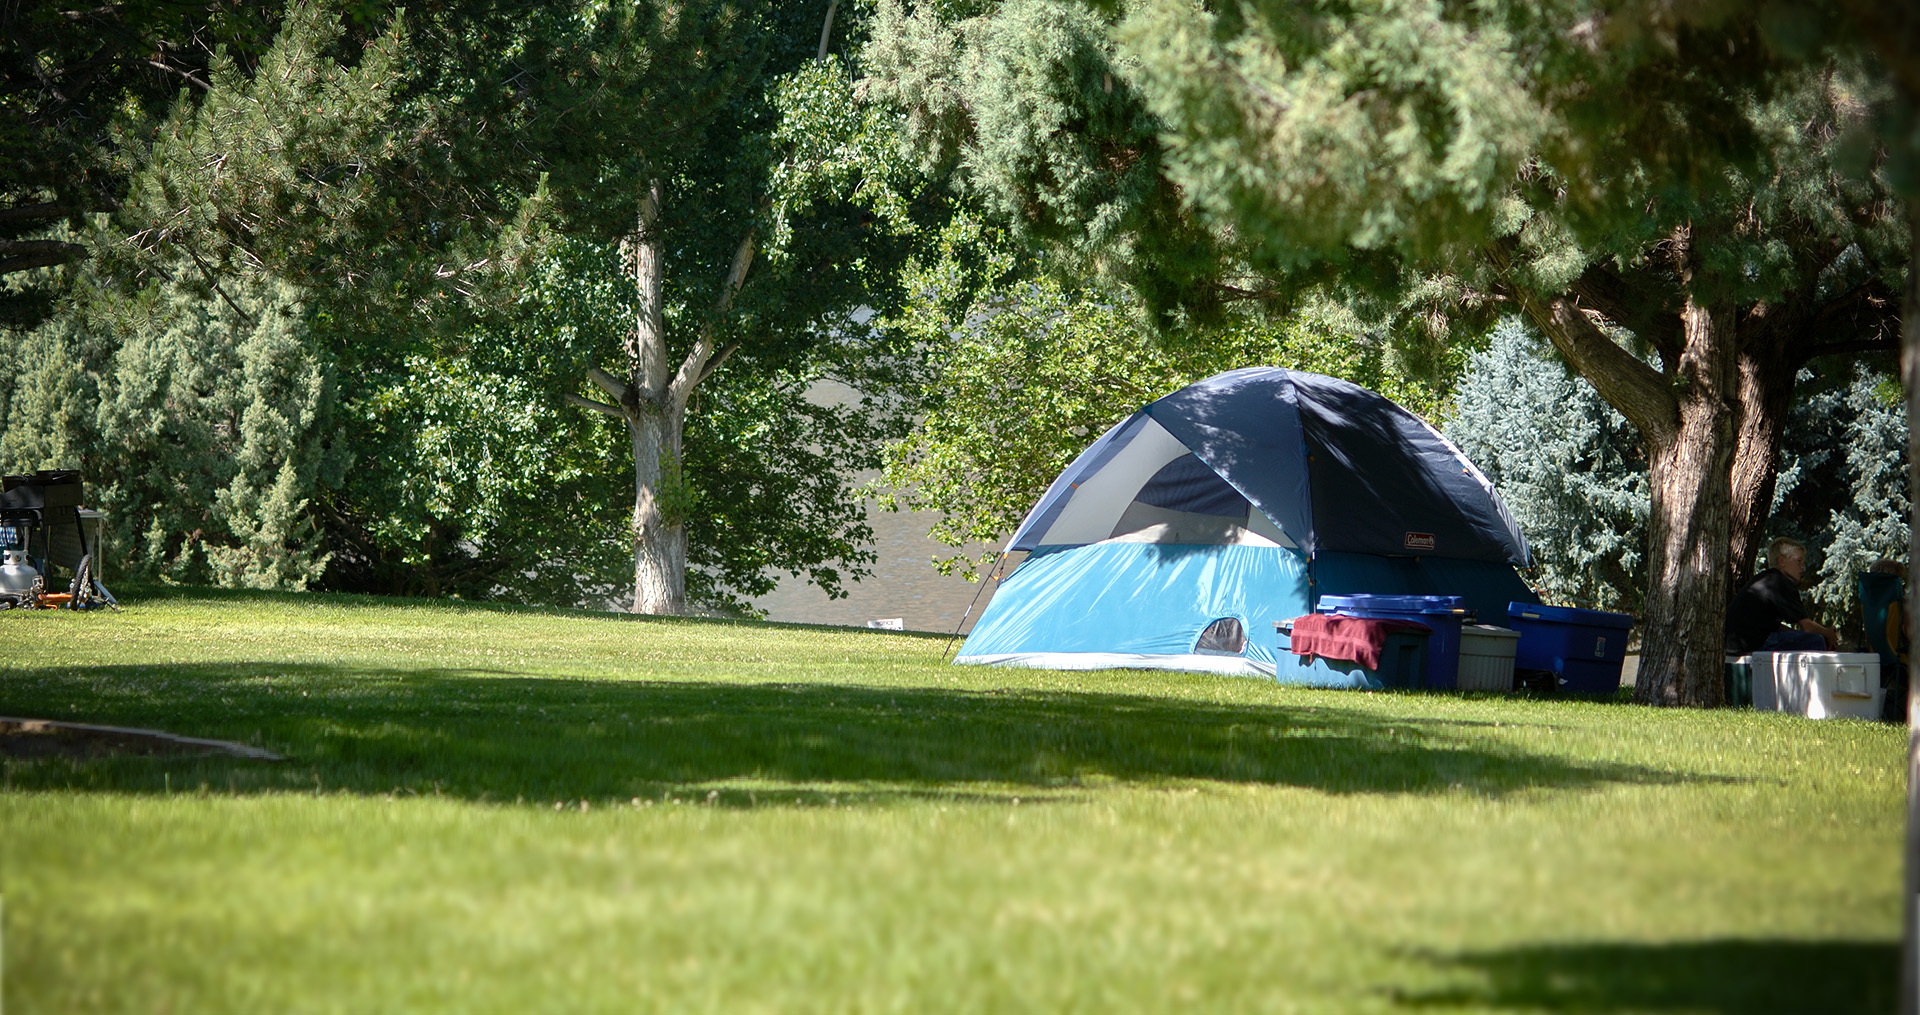 a tent in a campground